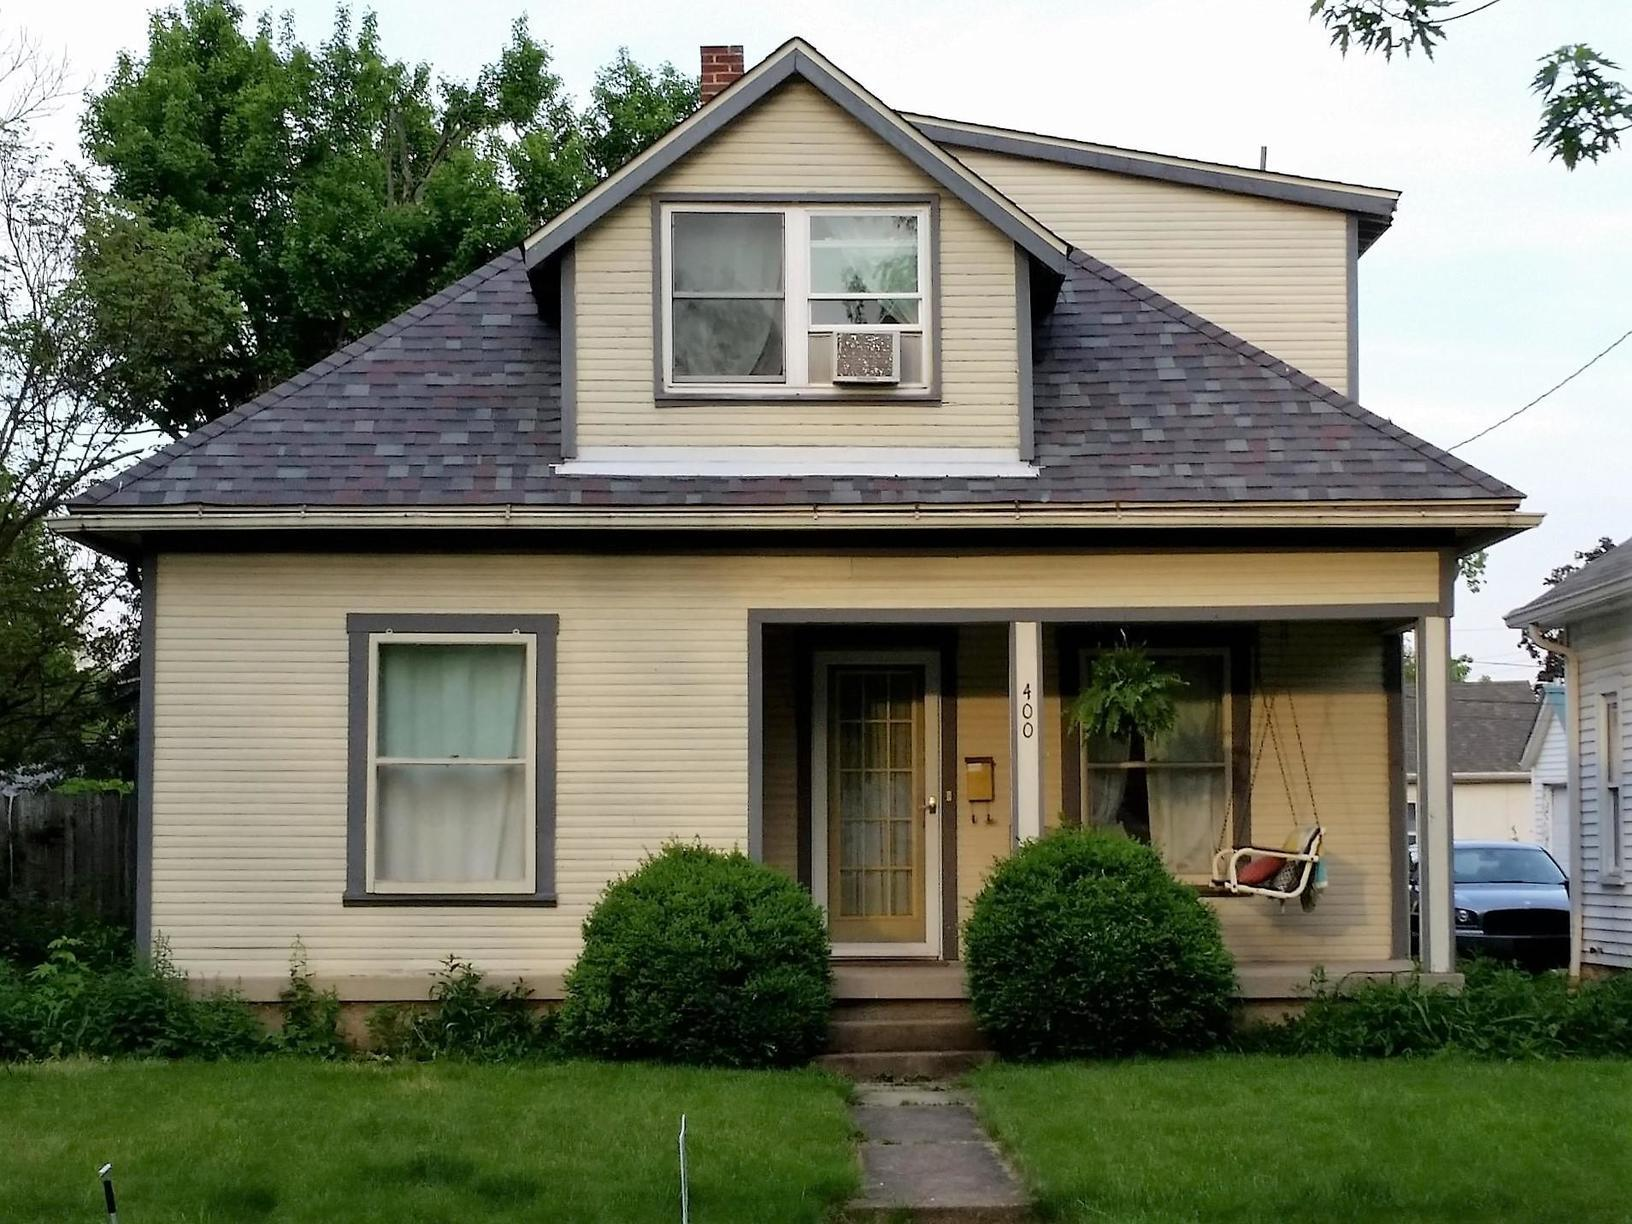 Roof Replacement in Muncie, IN - After Photo